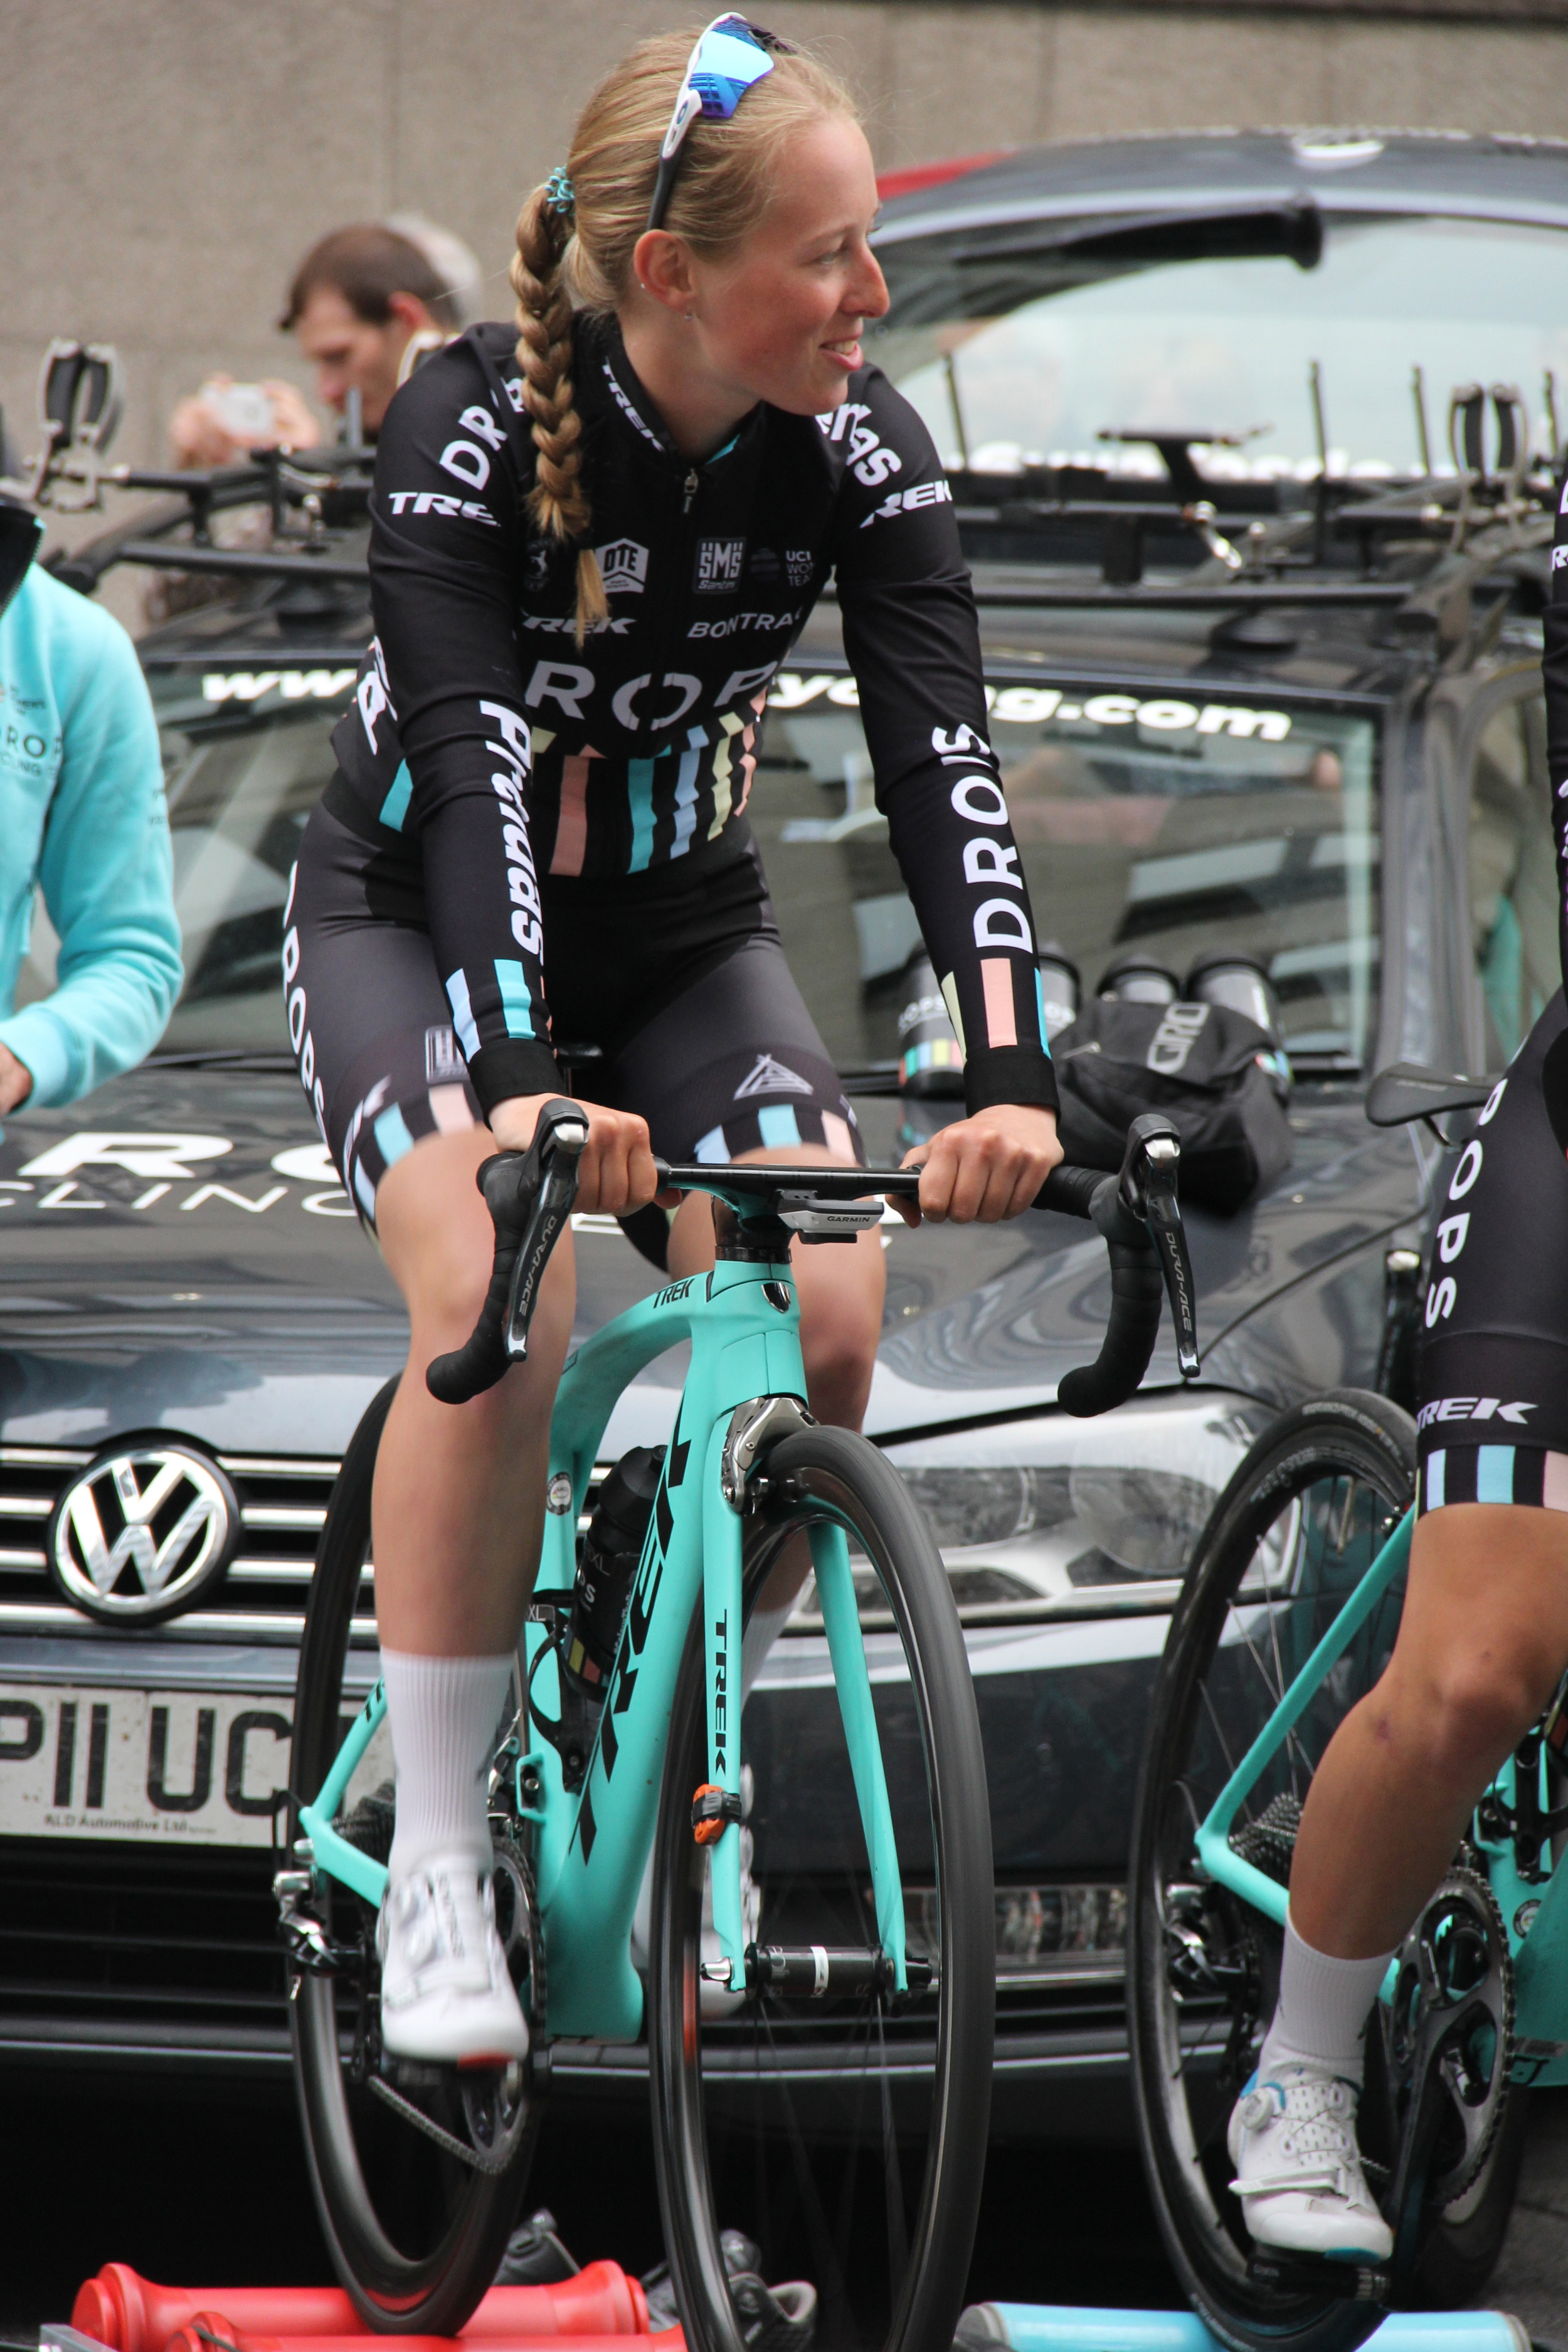 Team Drops' Alice Barnes stormed to victory in the Women's Elite race